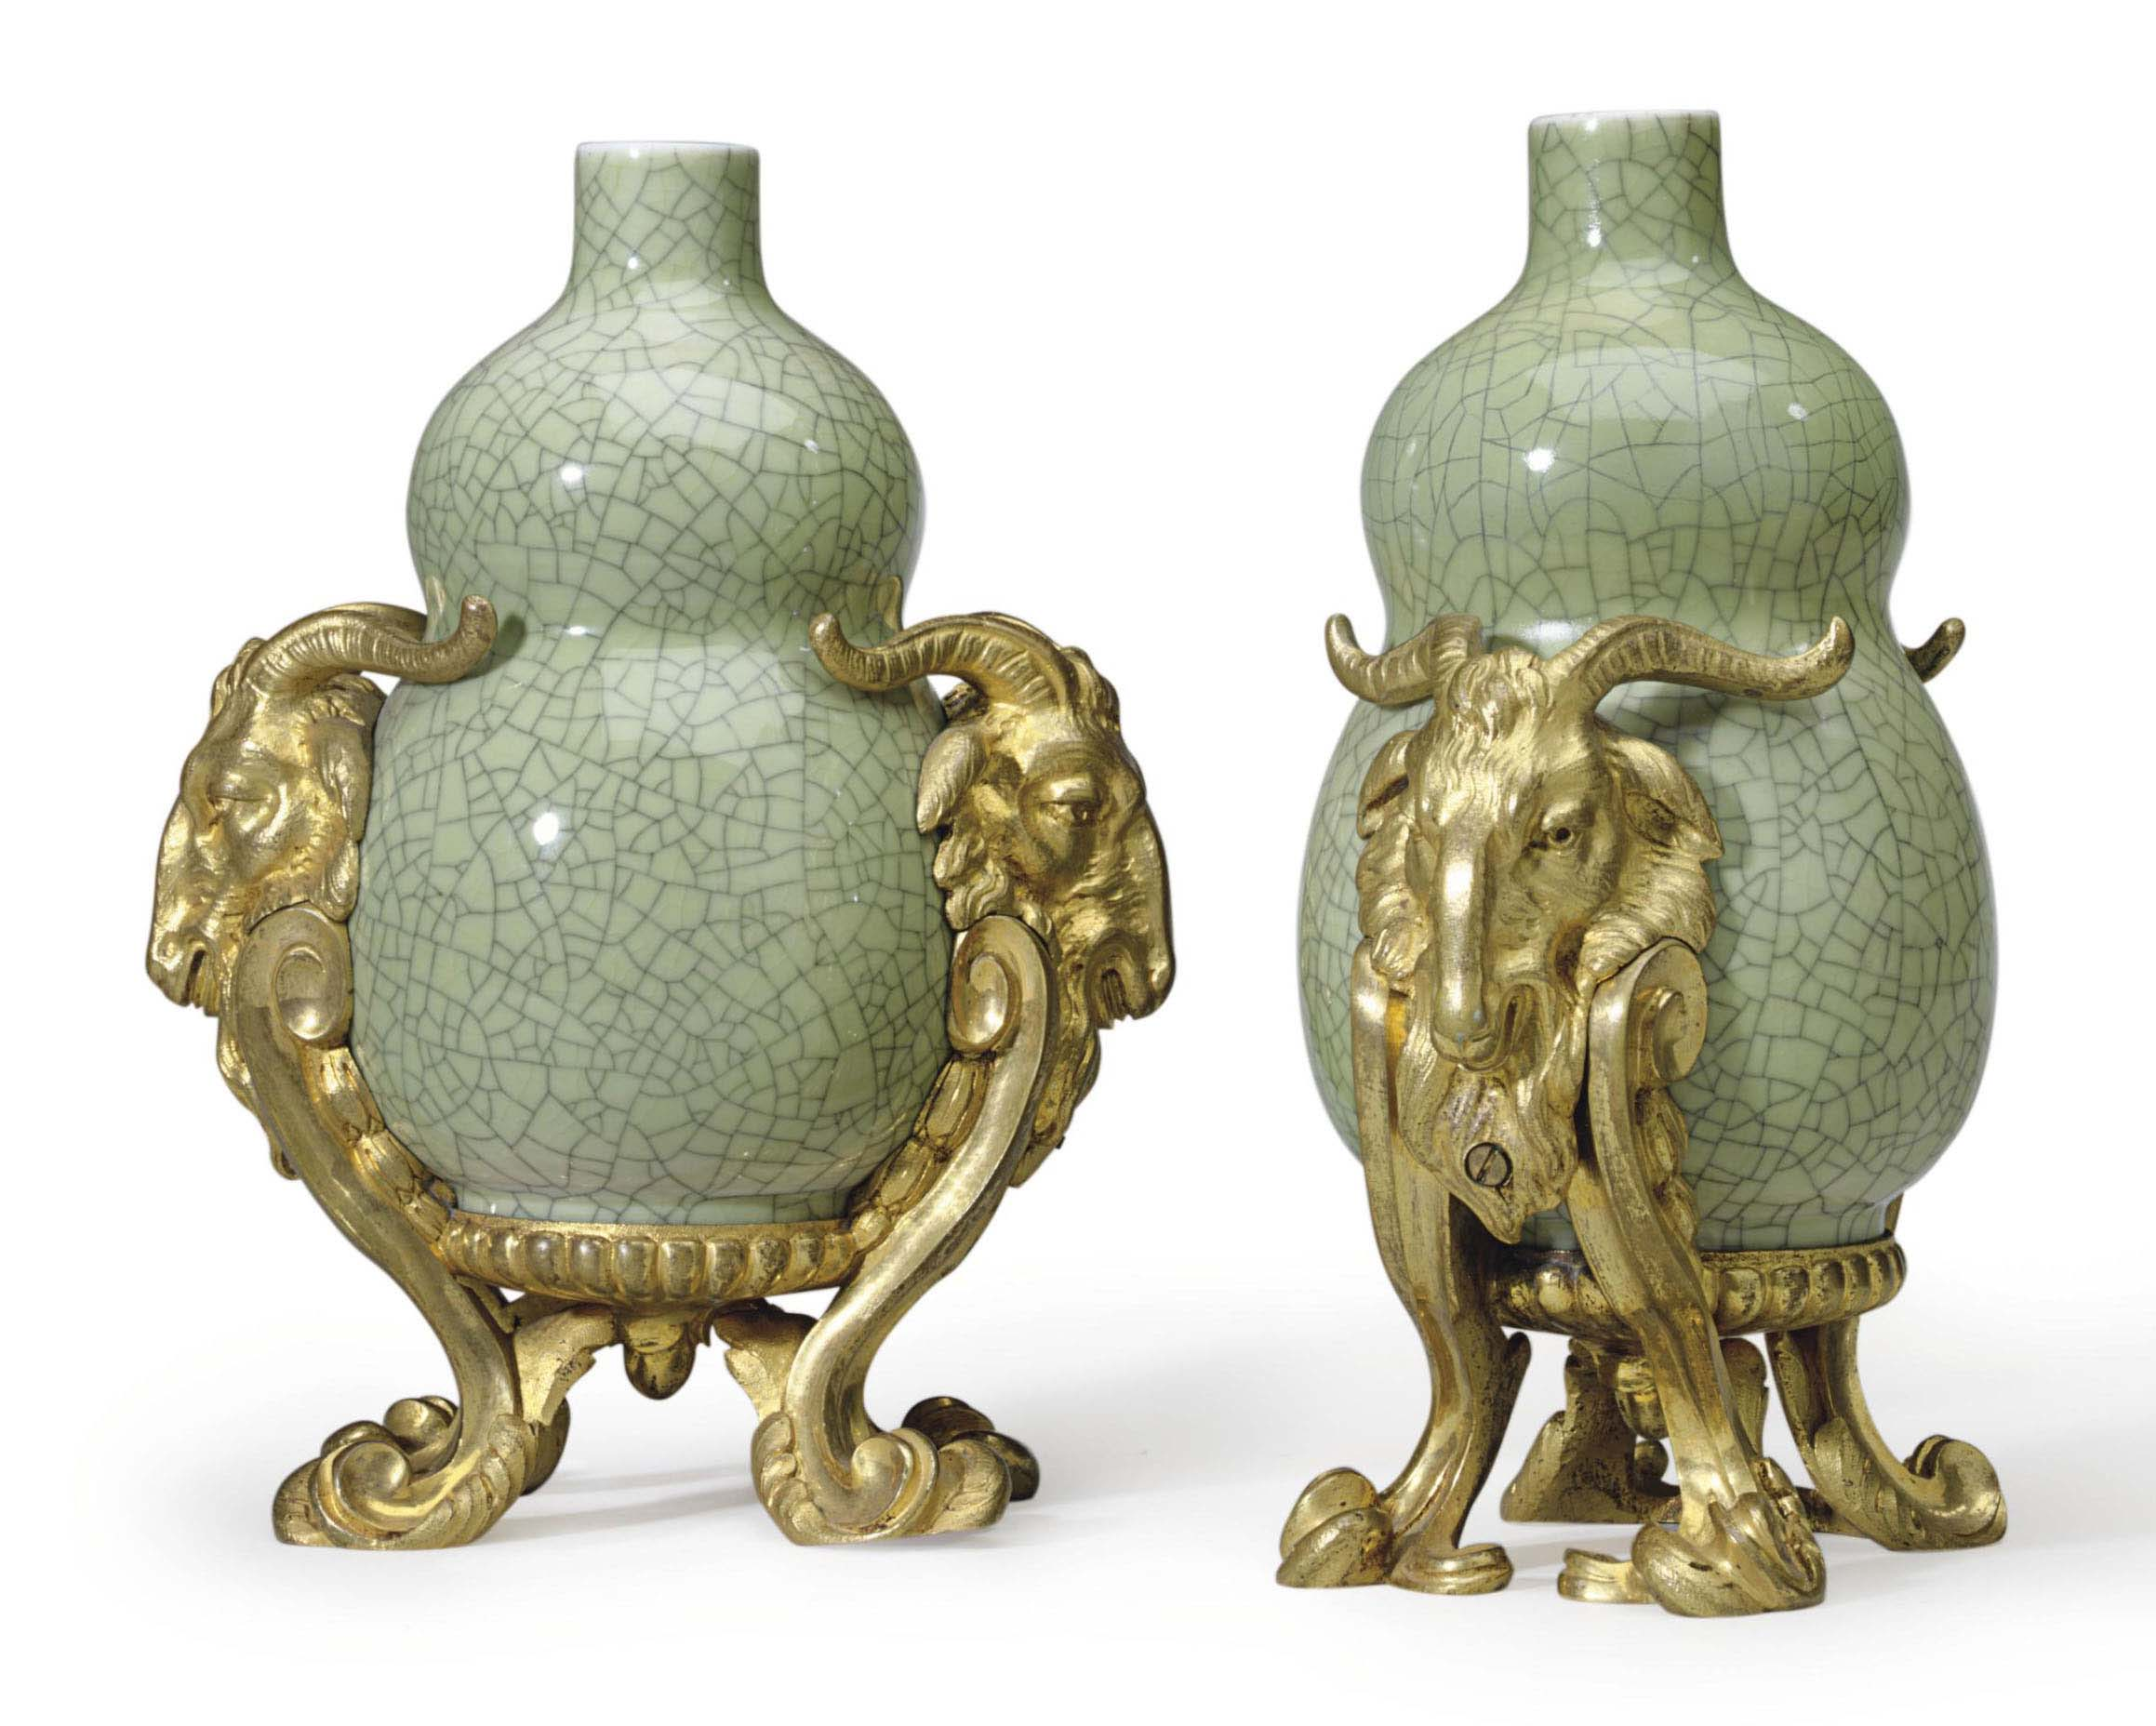 A PAIR OF FRENCH ORMOLU-MOUNTED GREEN CRACKLE-GLAZED PORCELAIN DOUBLE-GOURD VASES